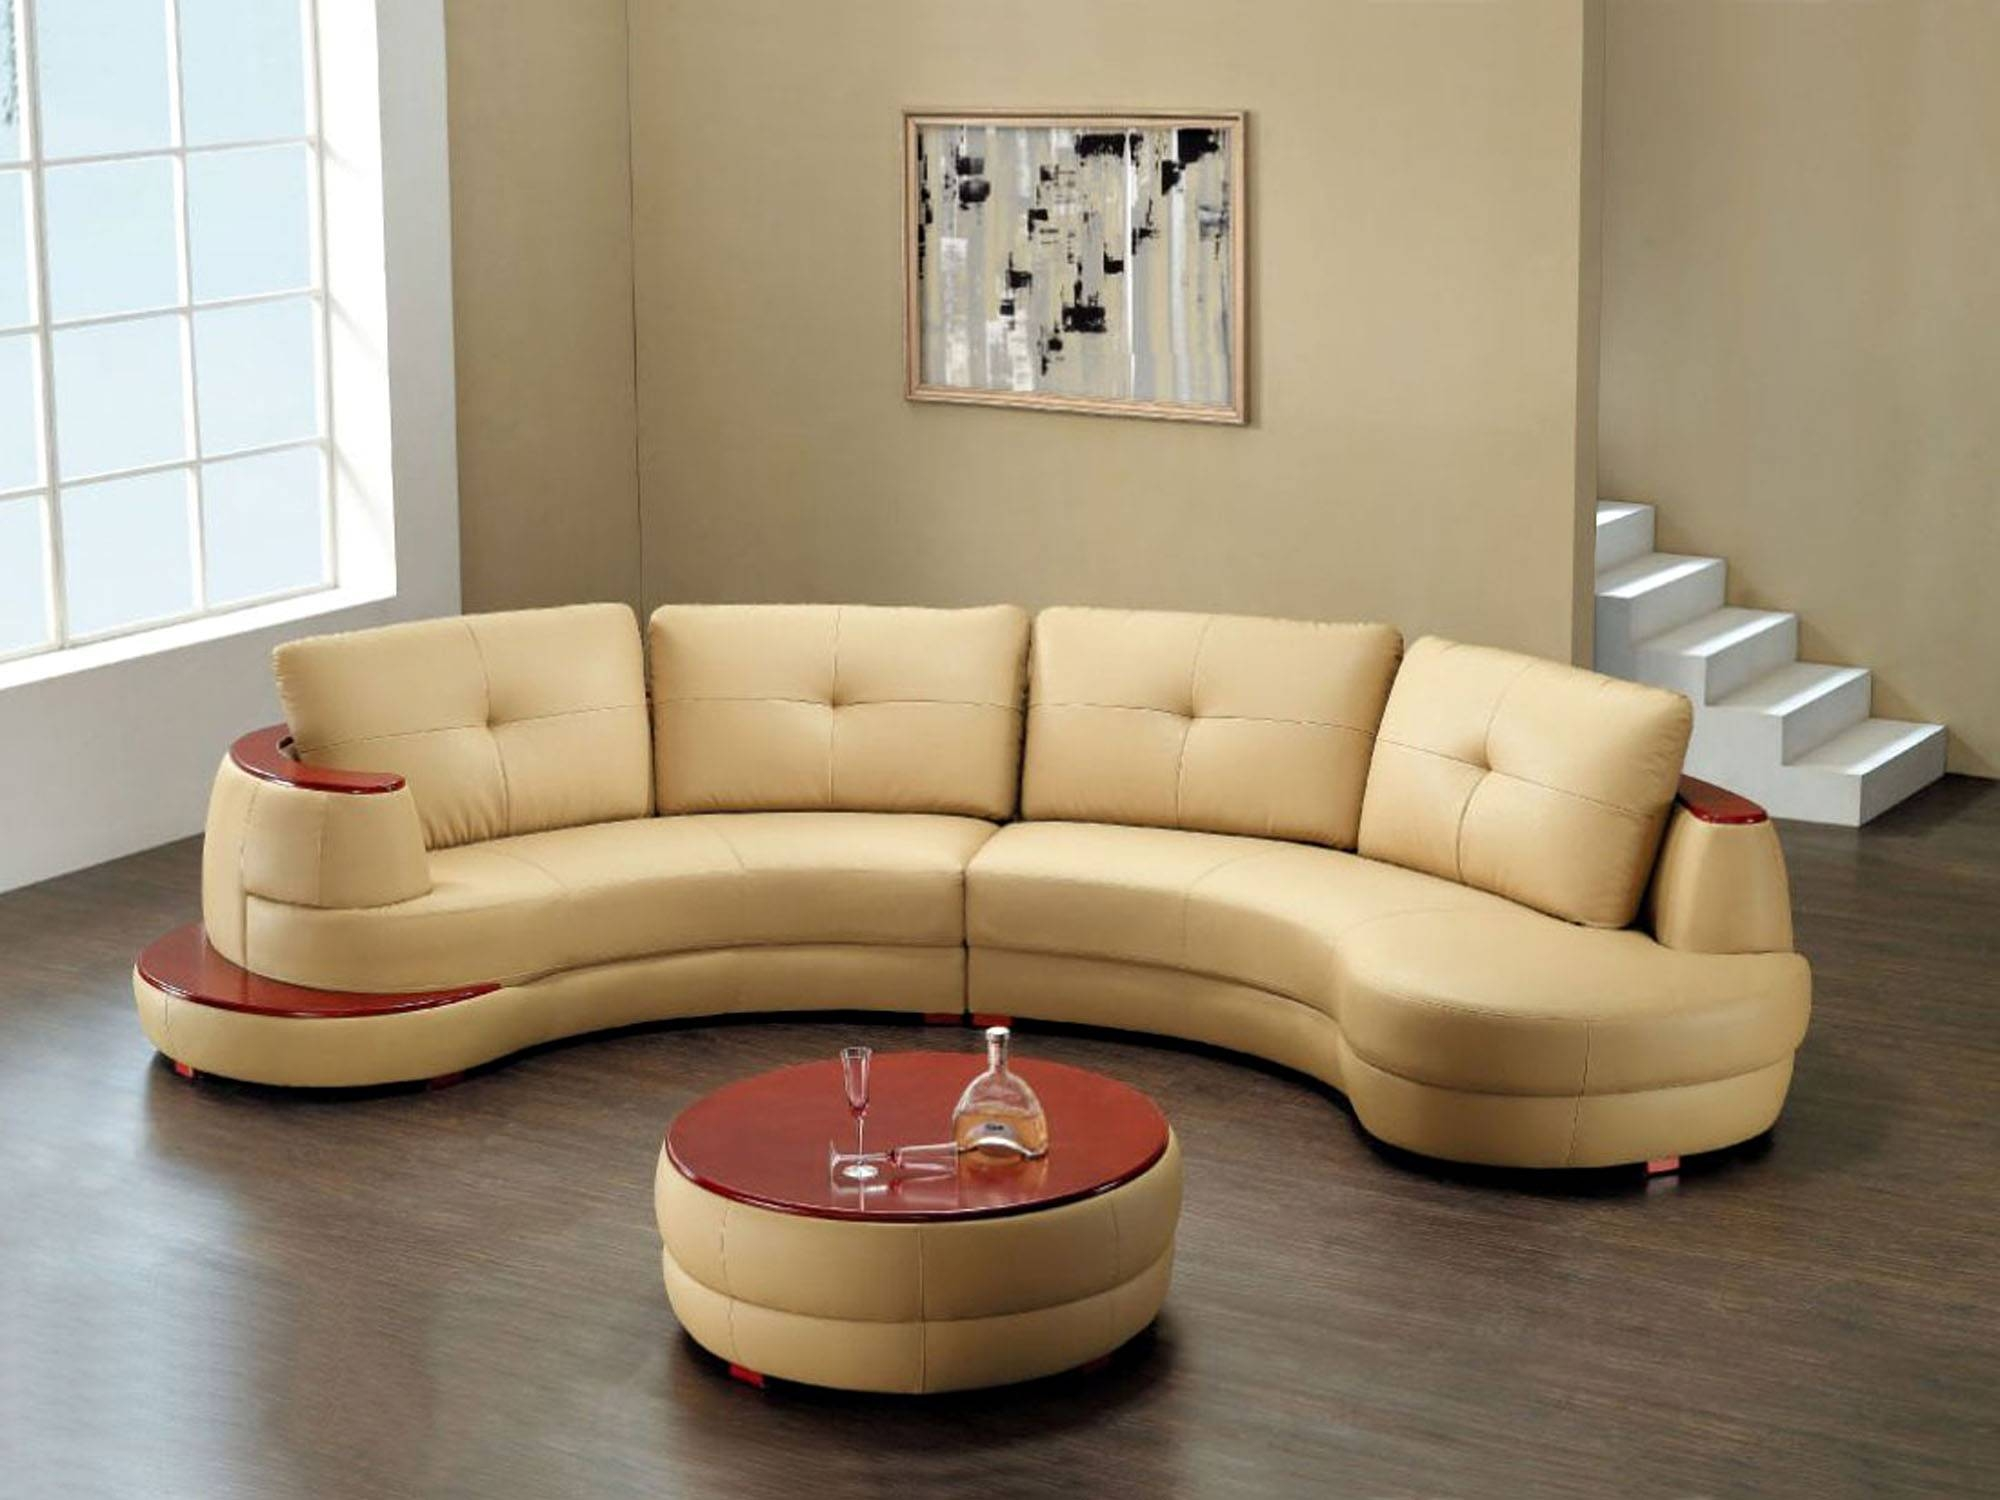 Furniture: Cozy Beige Couch Design For Classic Living Room Ideas intended for Circular Sofa Chairs (Image 7 of 30)